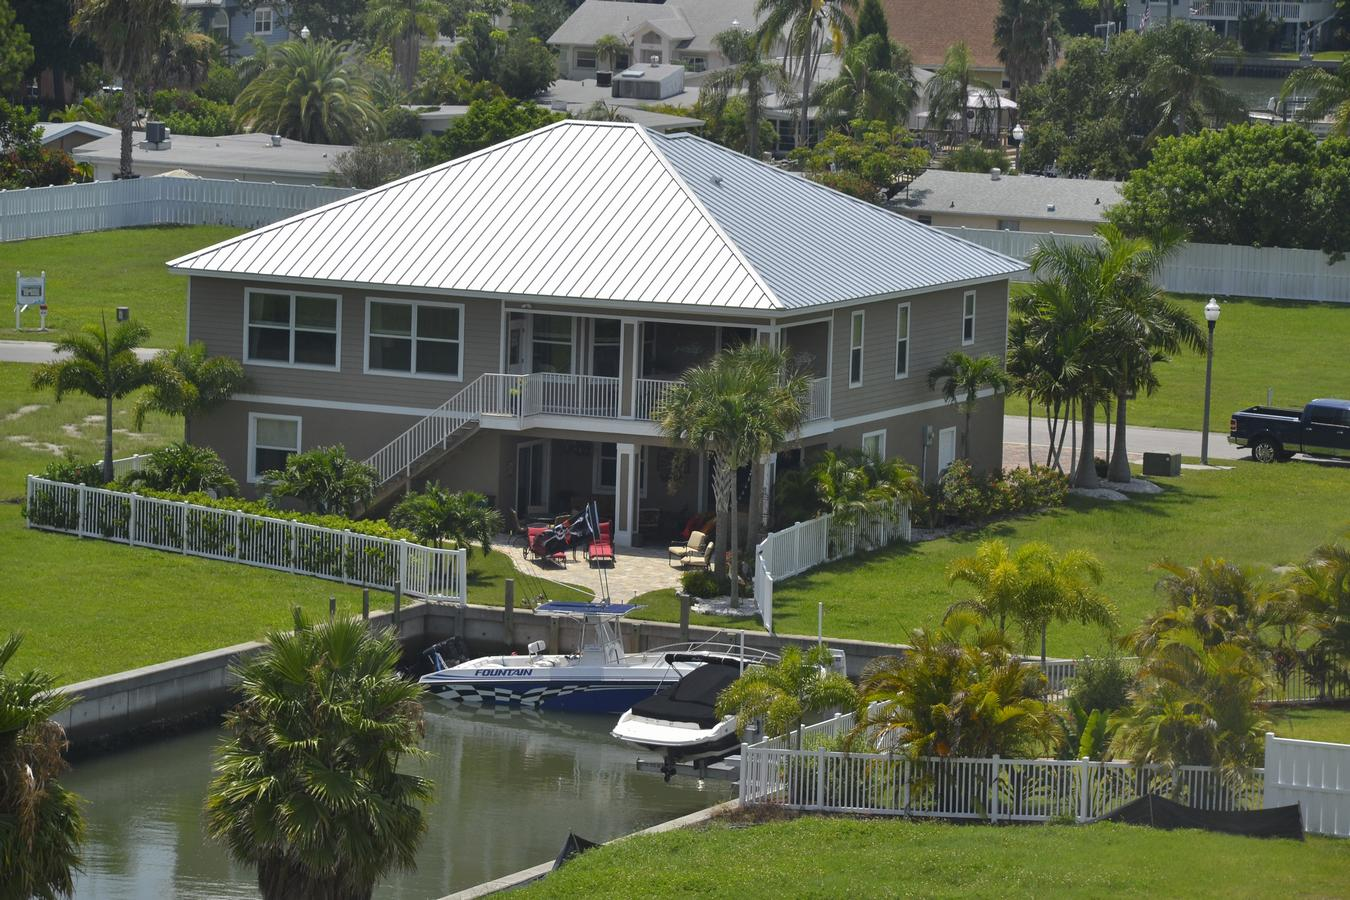 key west style waterfront home for sale in redington shores florida annalisa weller 39 s blog